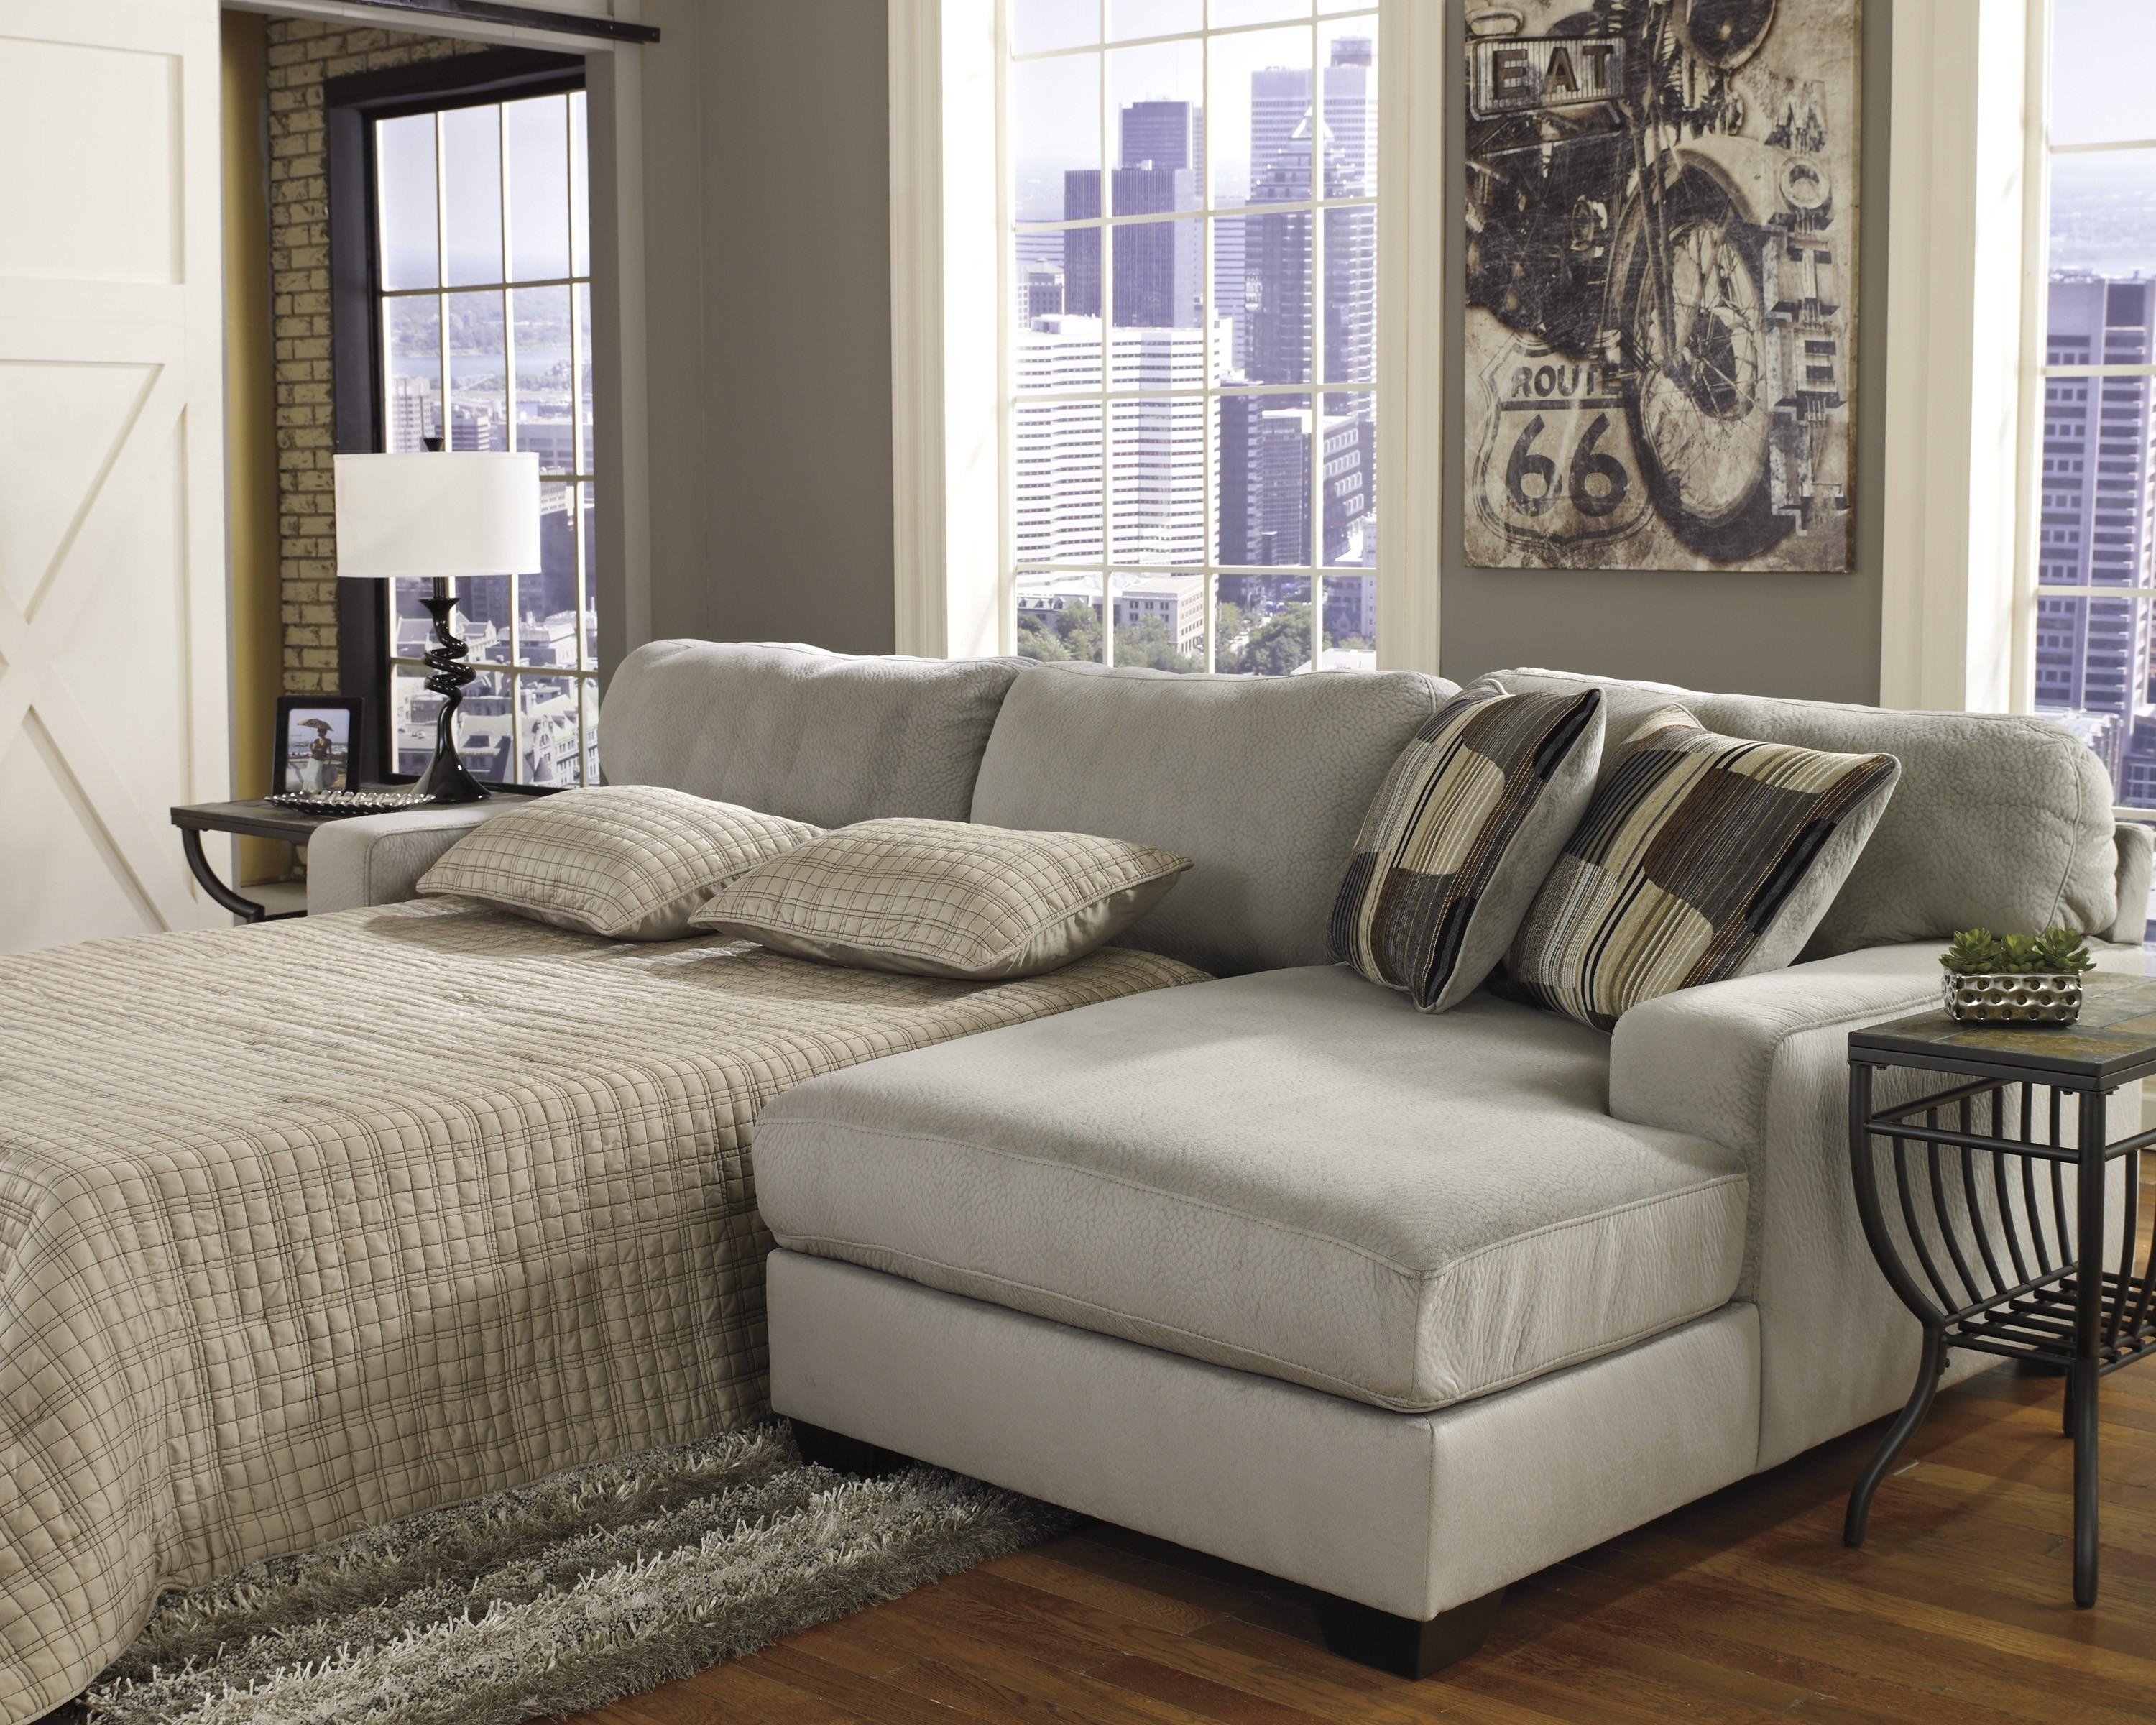 Sectional Sleeper Sofas With Chaise | Tehranmix Decoration For Sleeper Recliner Sectional (Image 11 of 20)